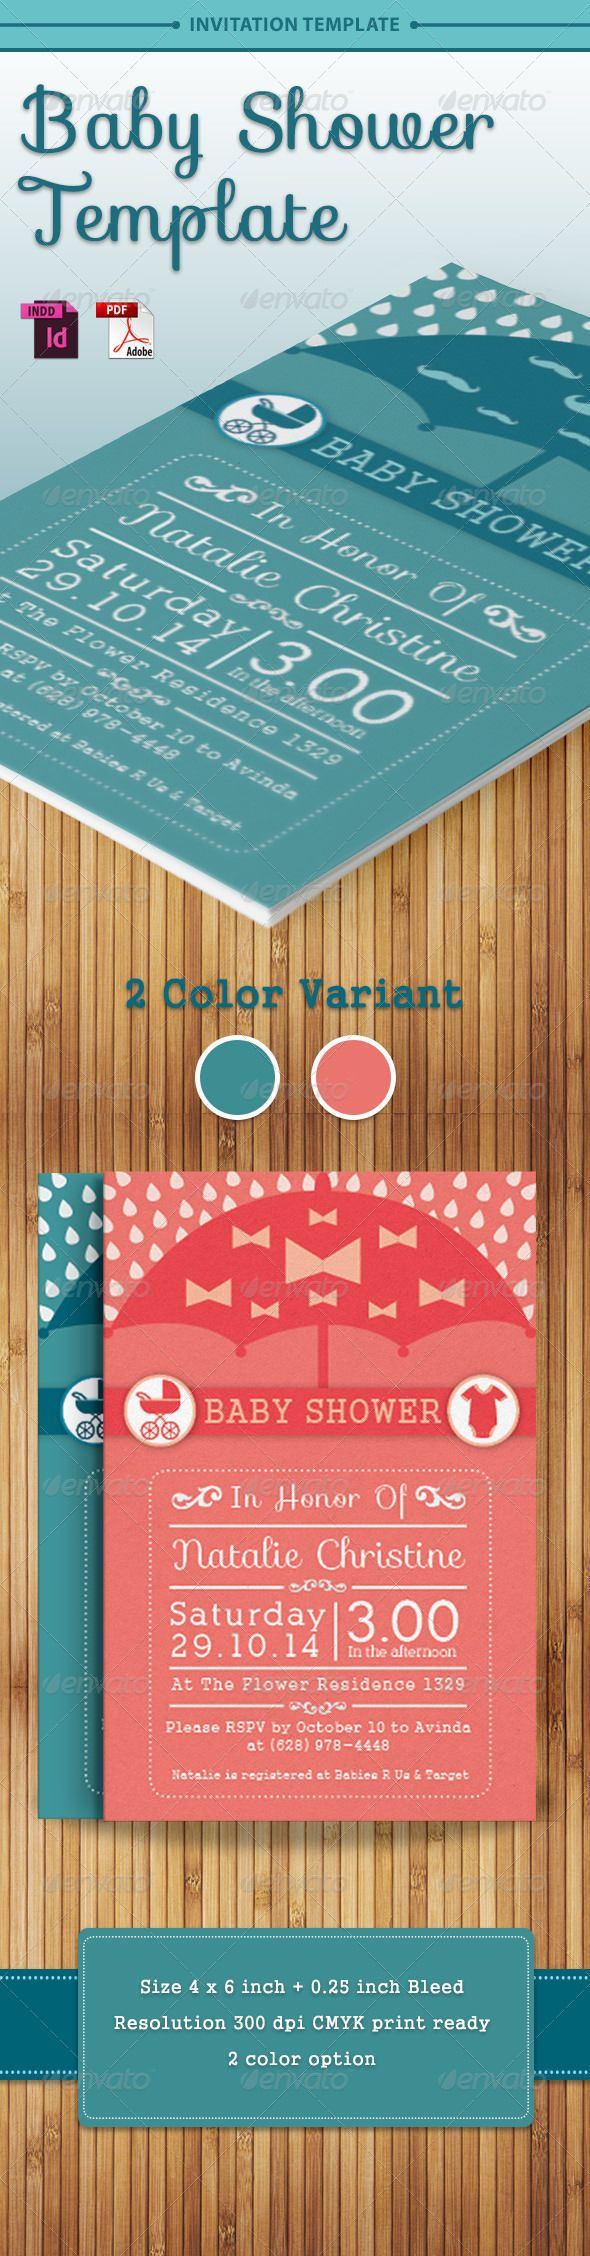 baby shower bbq invitation templates%0A Baby Shower Template  Vol